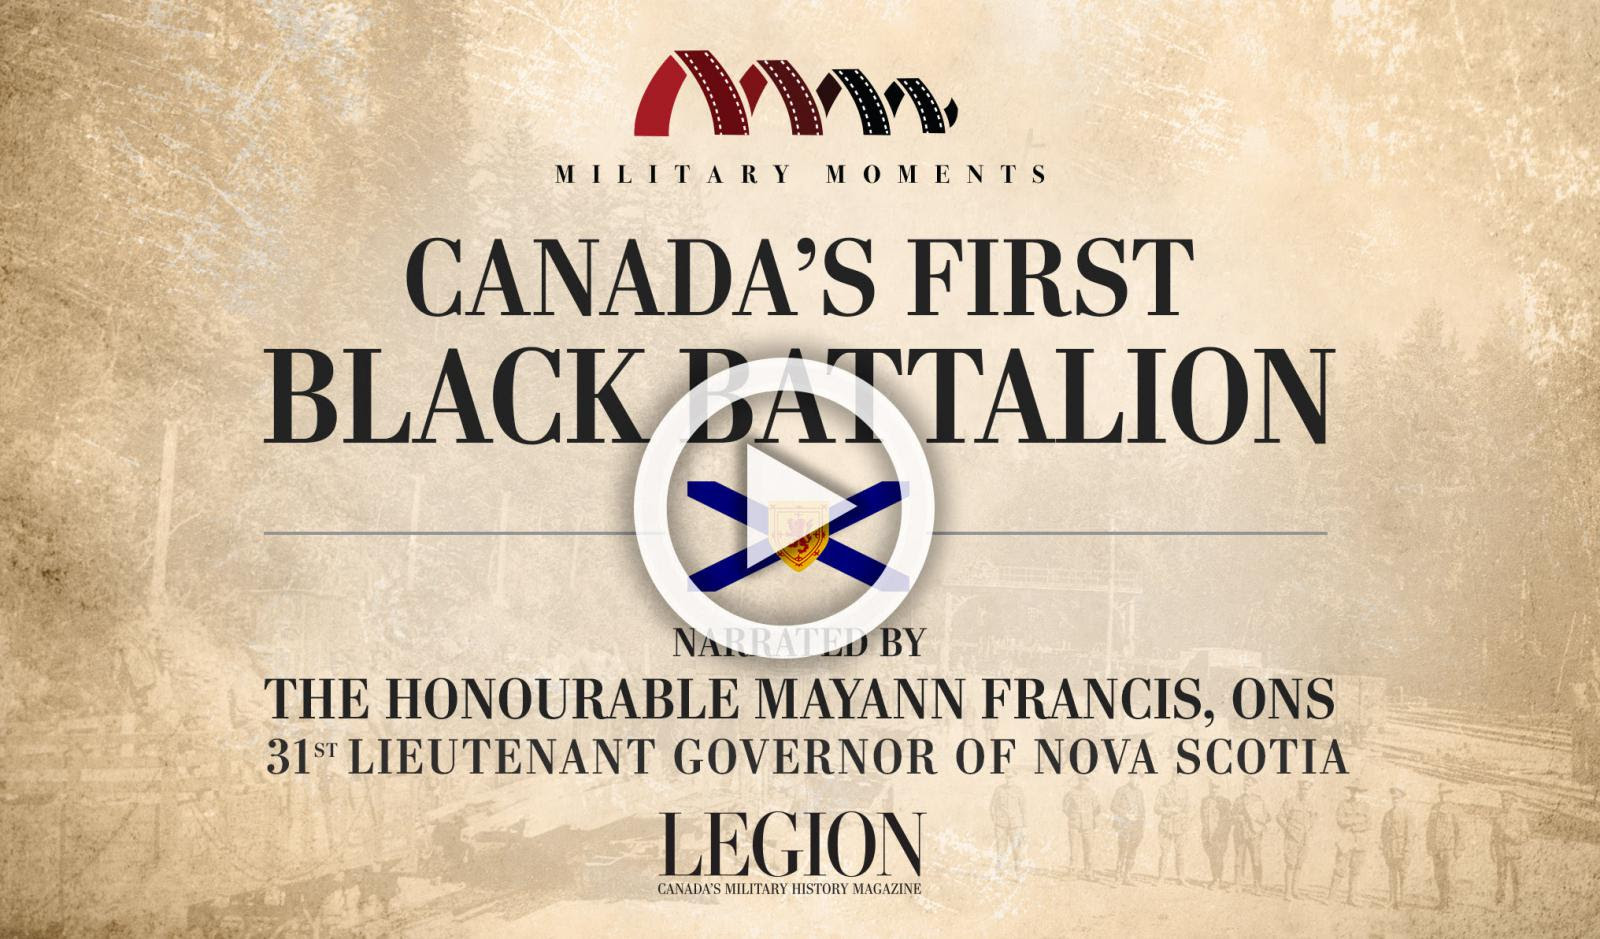 Mayann Francis Narrated Canada's first black battalion